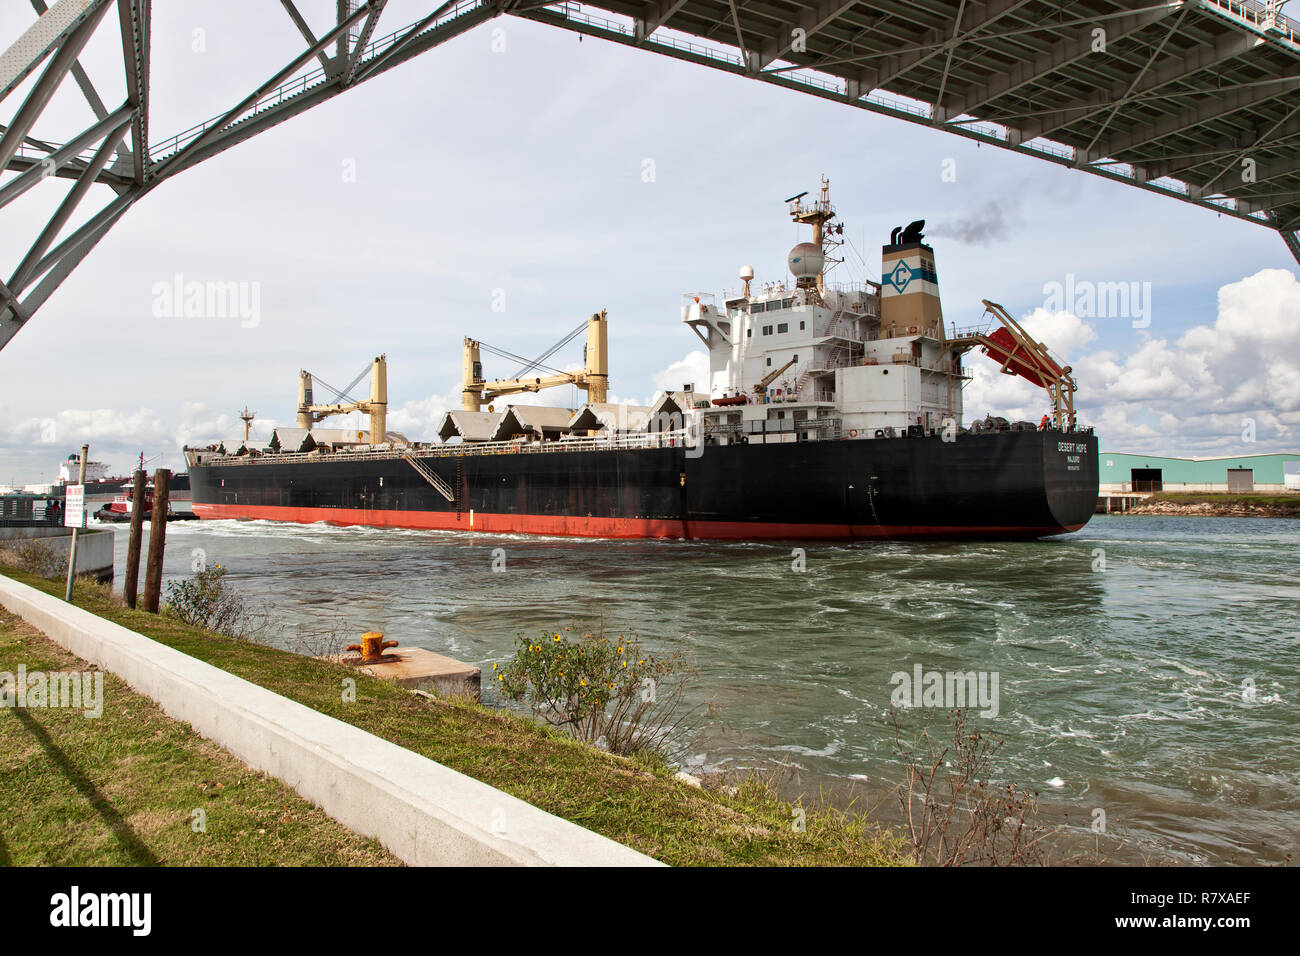 Cargo ship transporting grain, entering Port of Corpus Christi, passing under Harbor bridge. Stock Photo